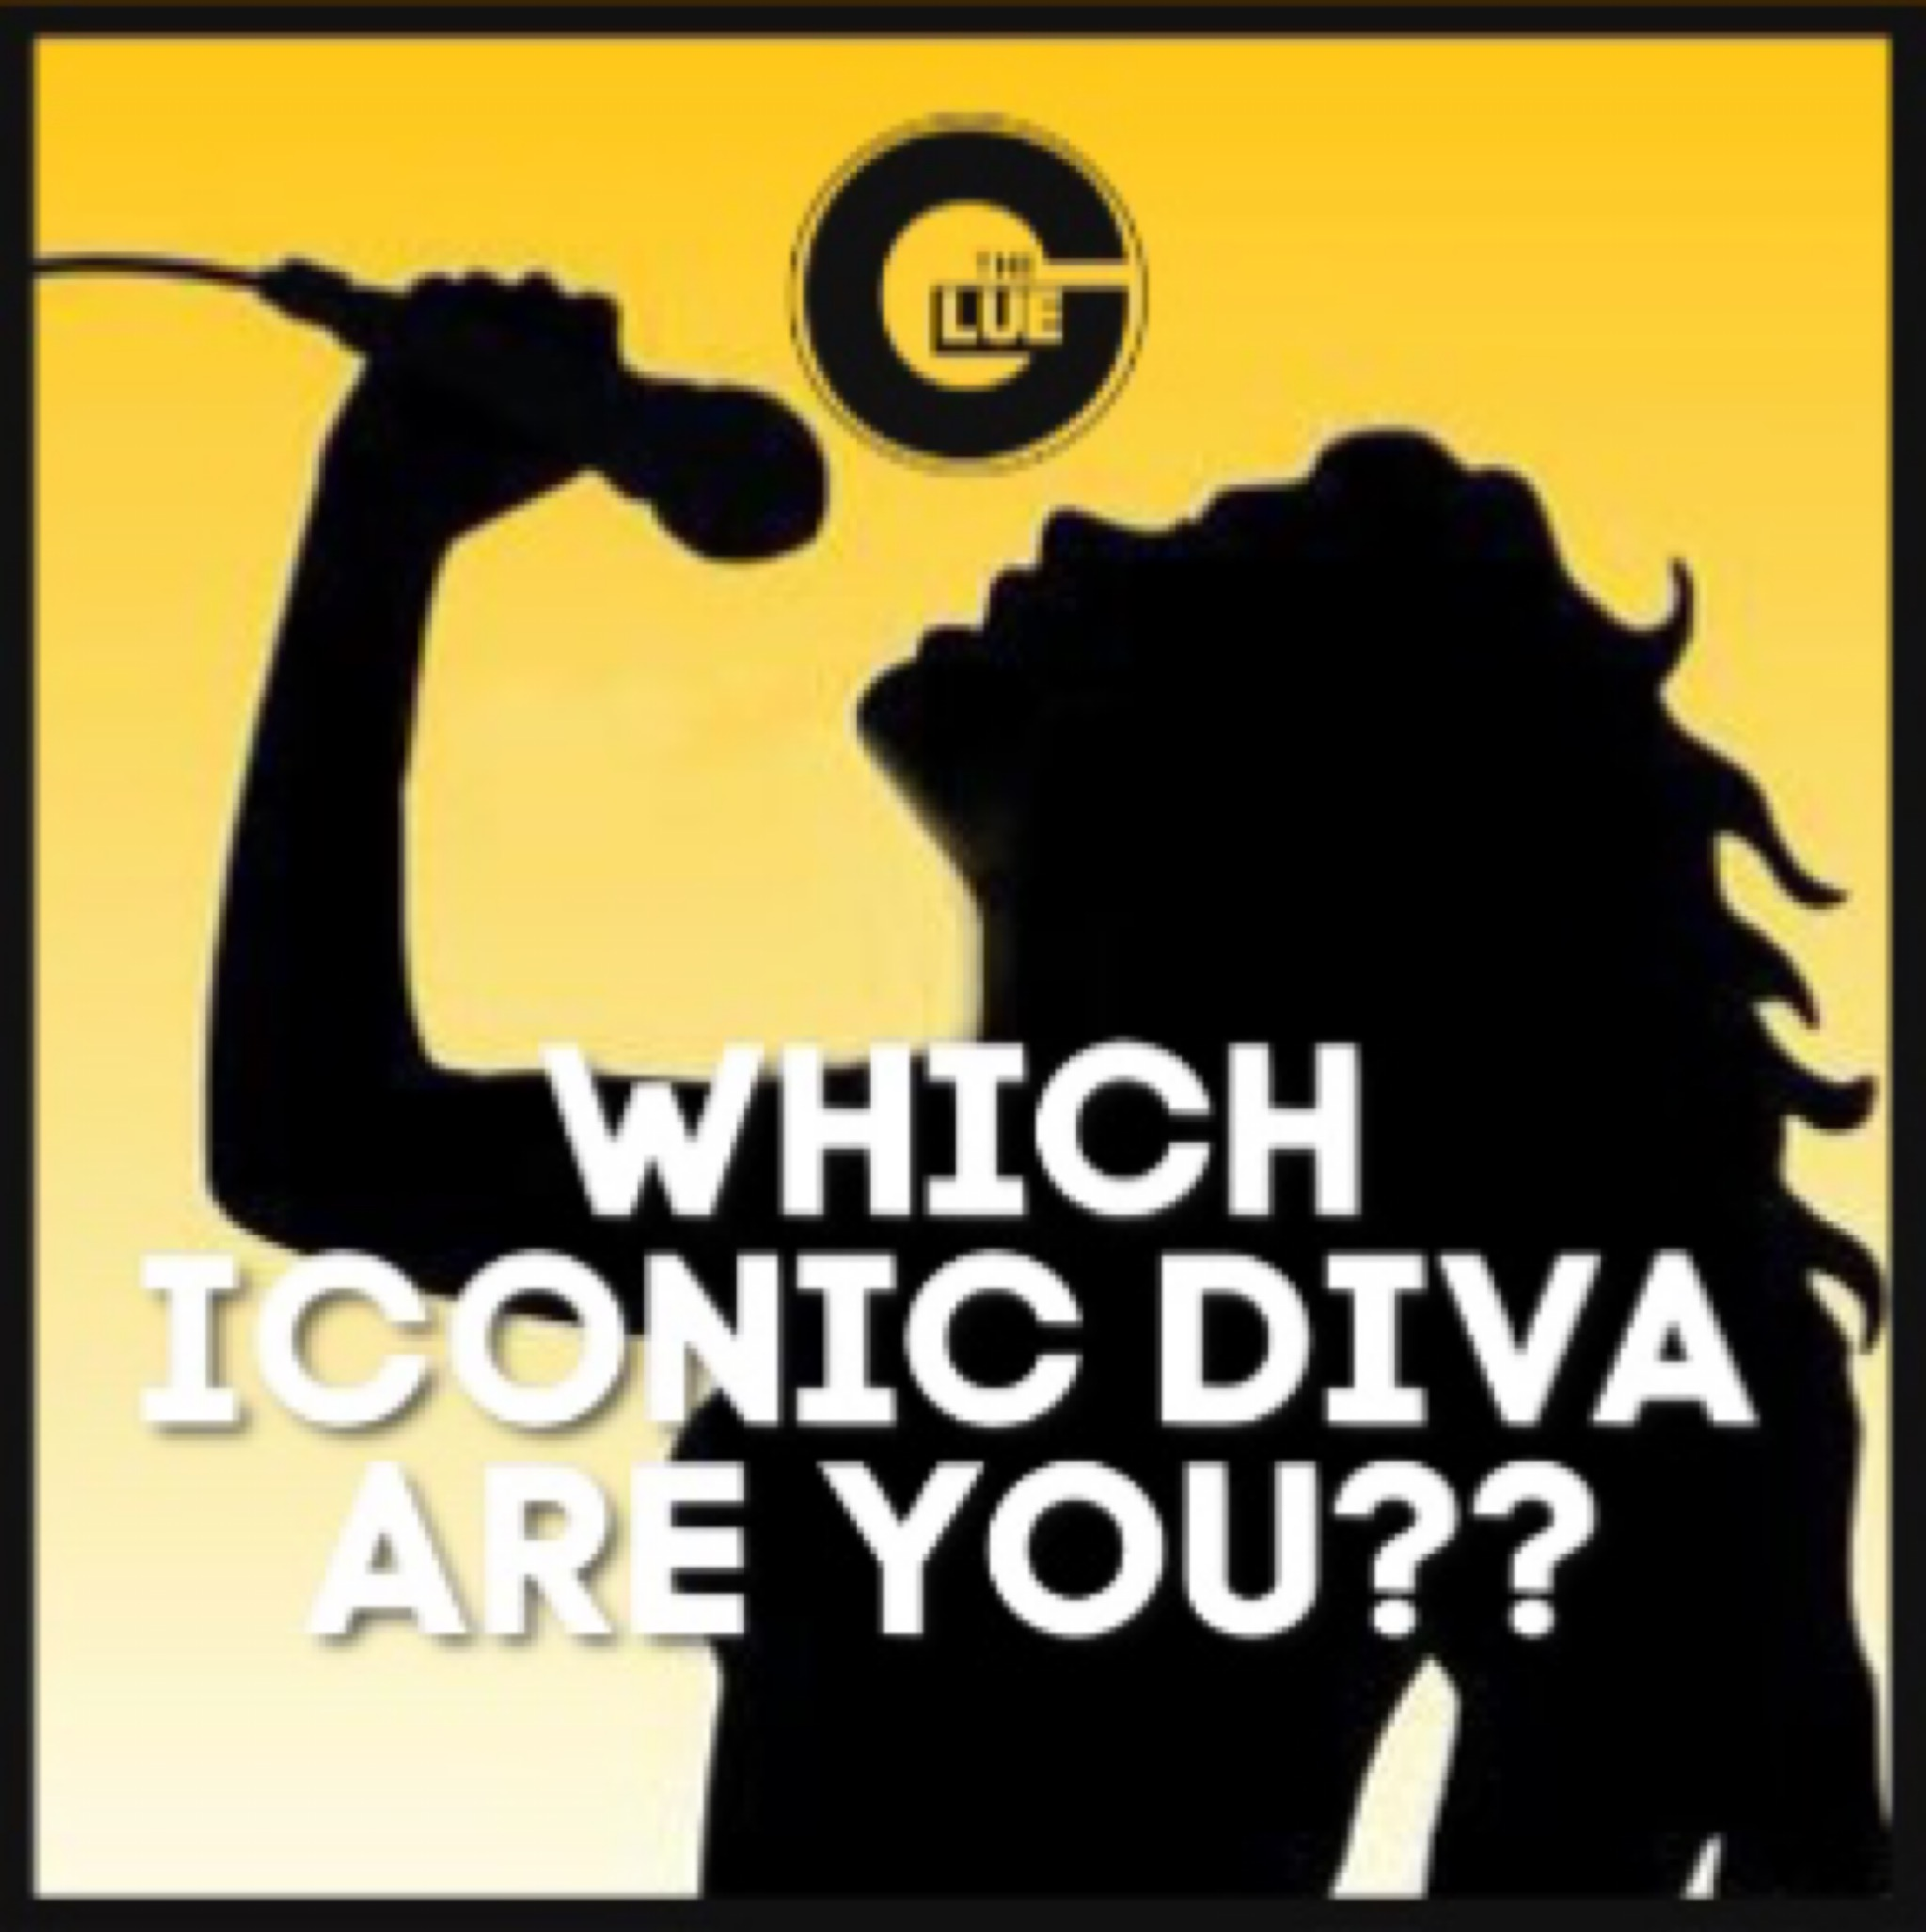 QUIZ: Which iconic diva are you?